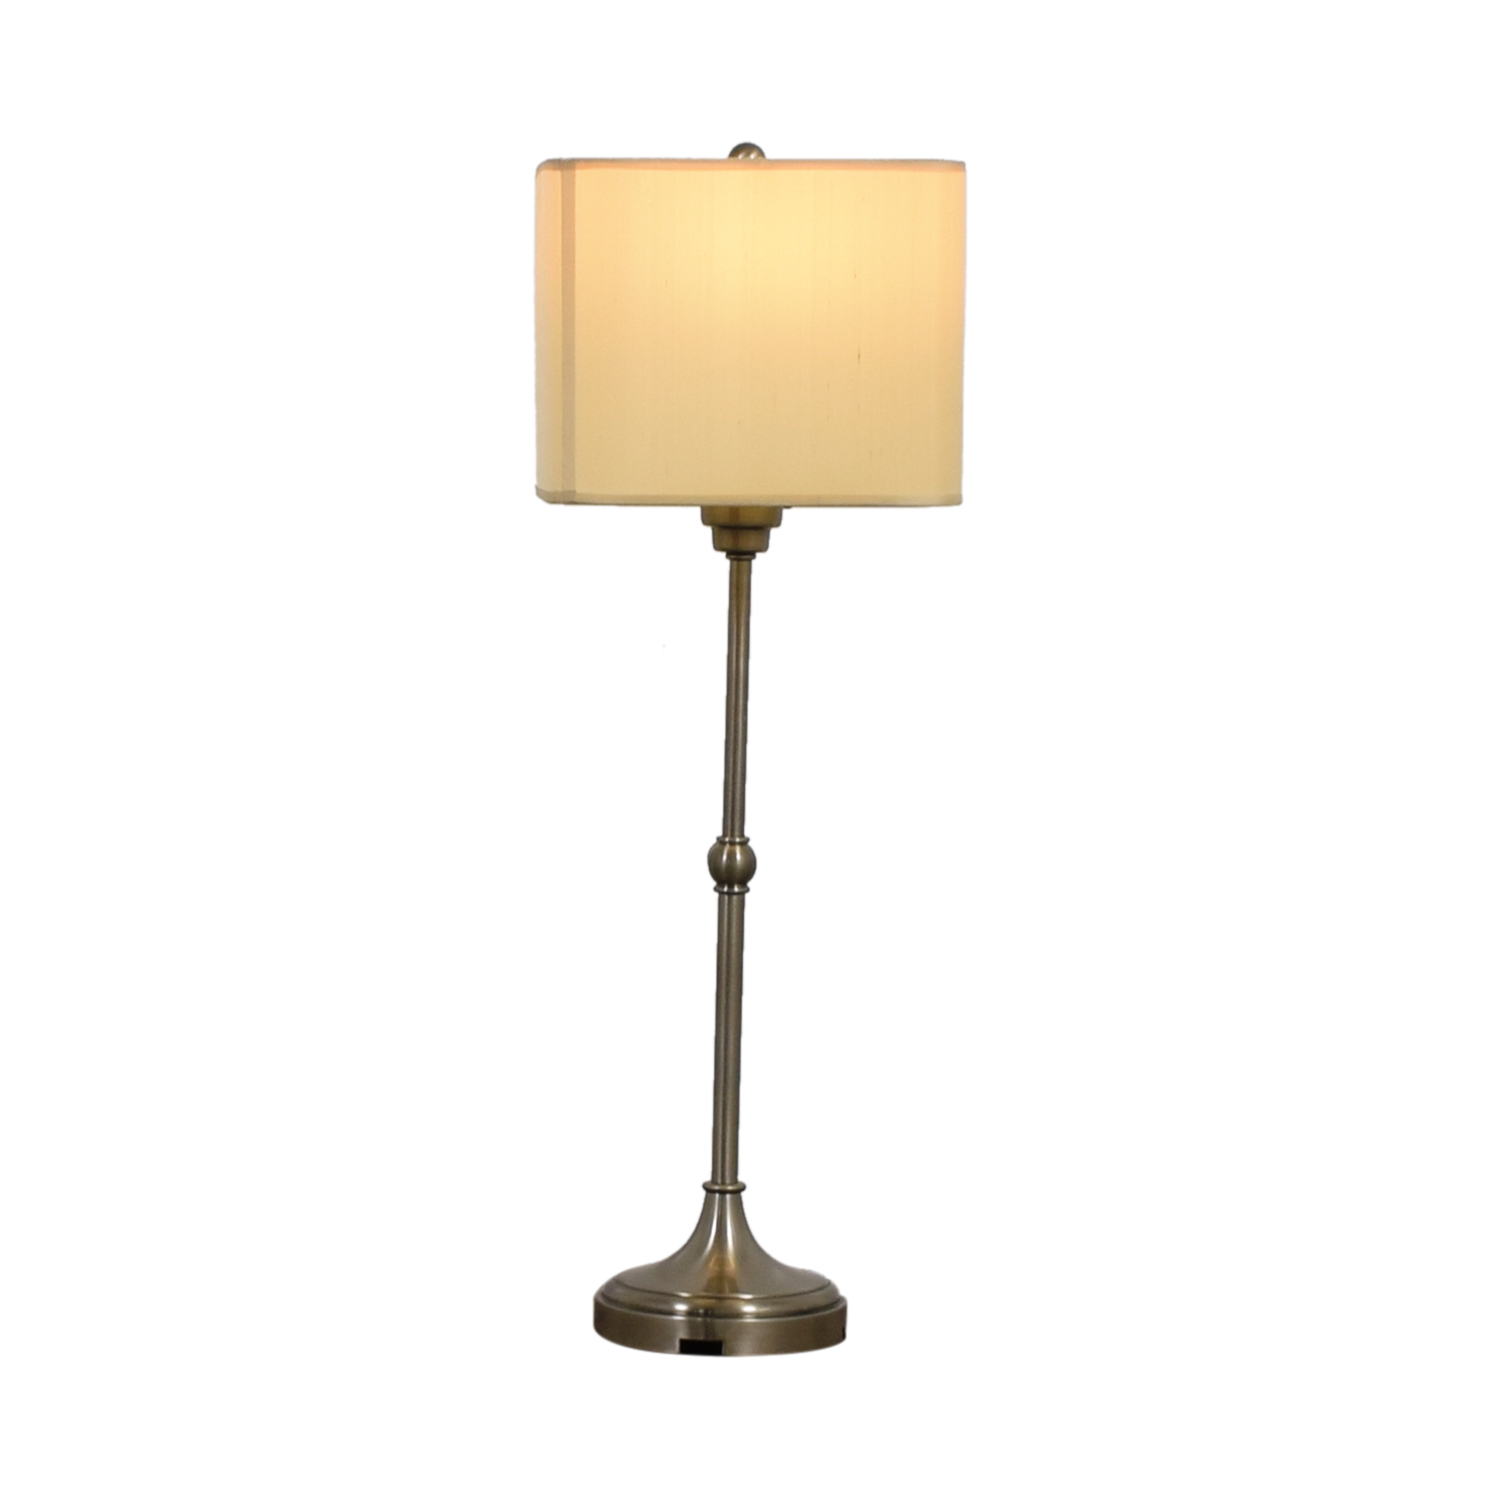 buy Restoration Hardware Restoration Hardware Brushed Nickel Tall Table Lamp online